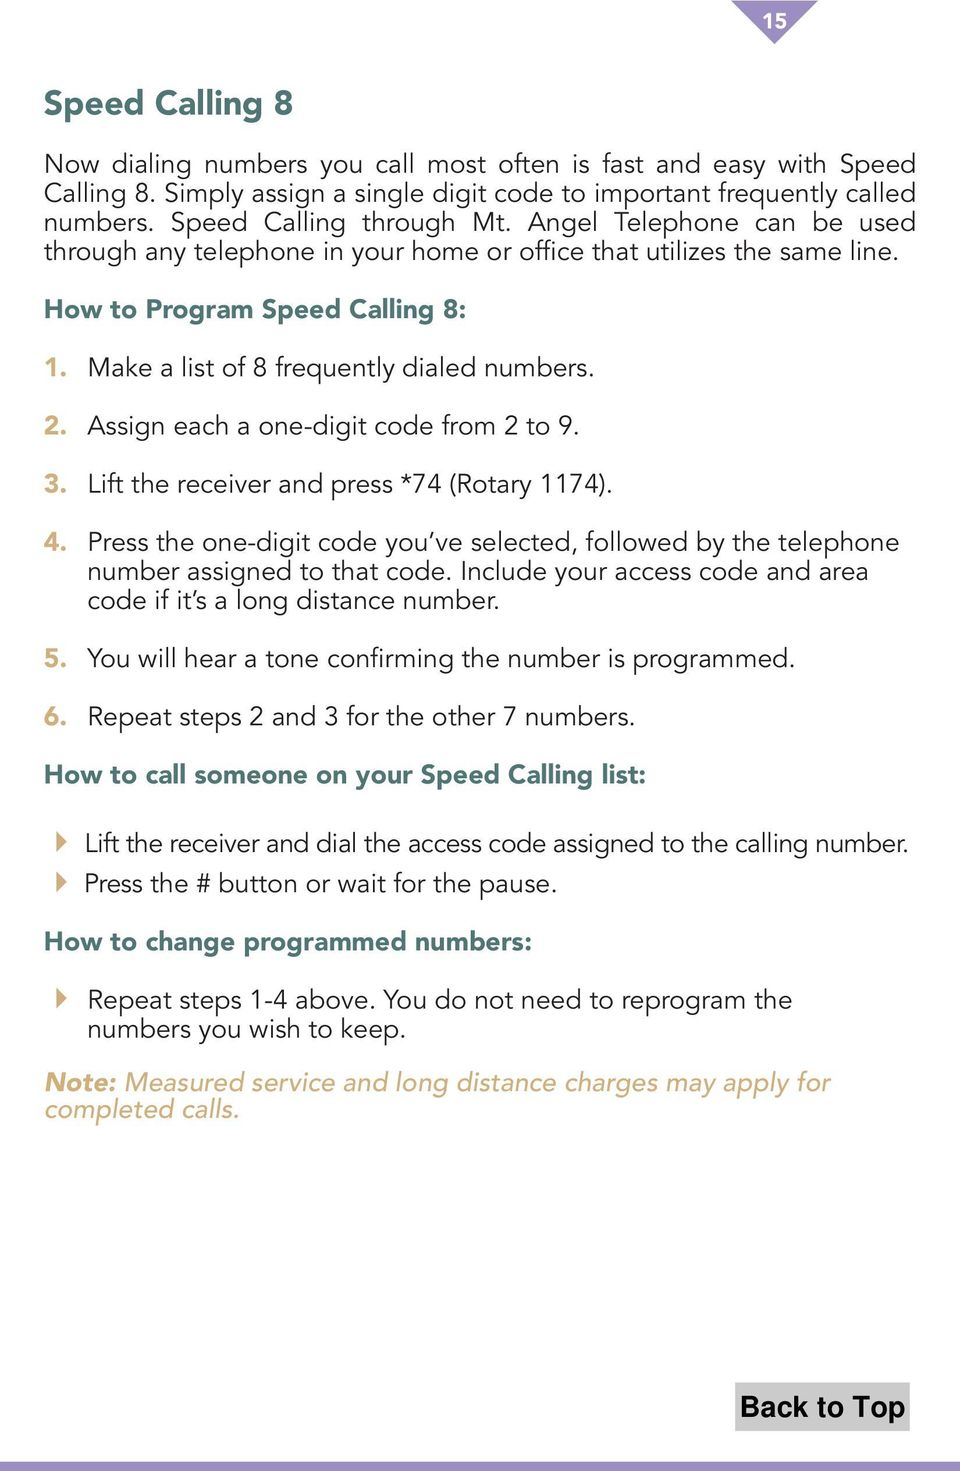 Assign each a one-digit code from 2 to 9. 3. Lift the receiver and press *74 (Rotary 1174). 4. Press the one-digit code you ve selected, followed by the telephone number assigned to that code.